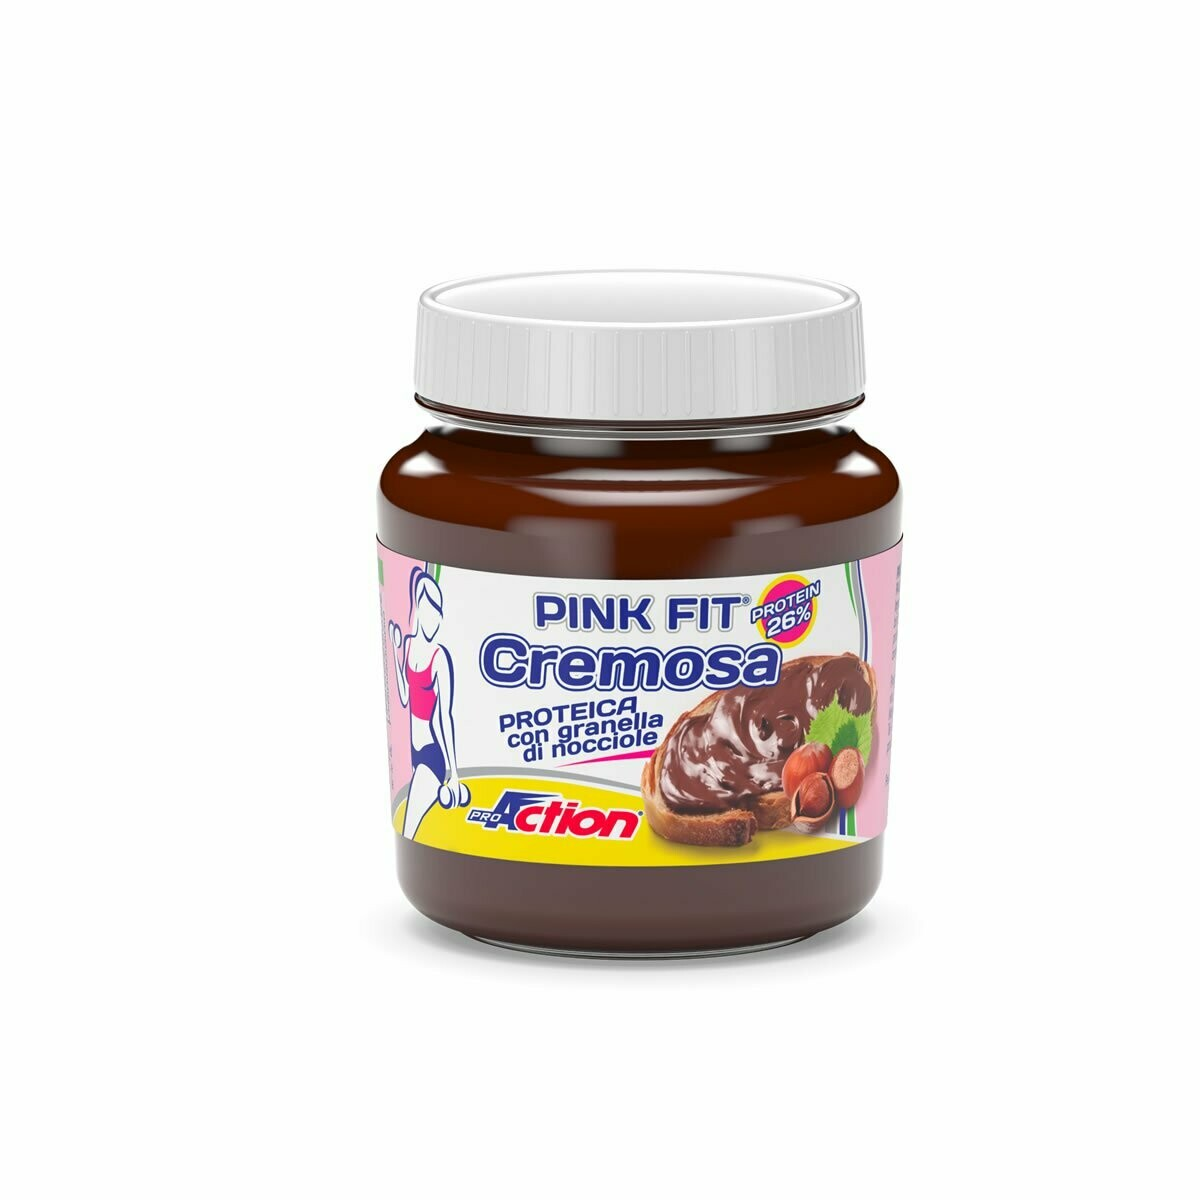 Pink Fit Cremosa chocolate